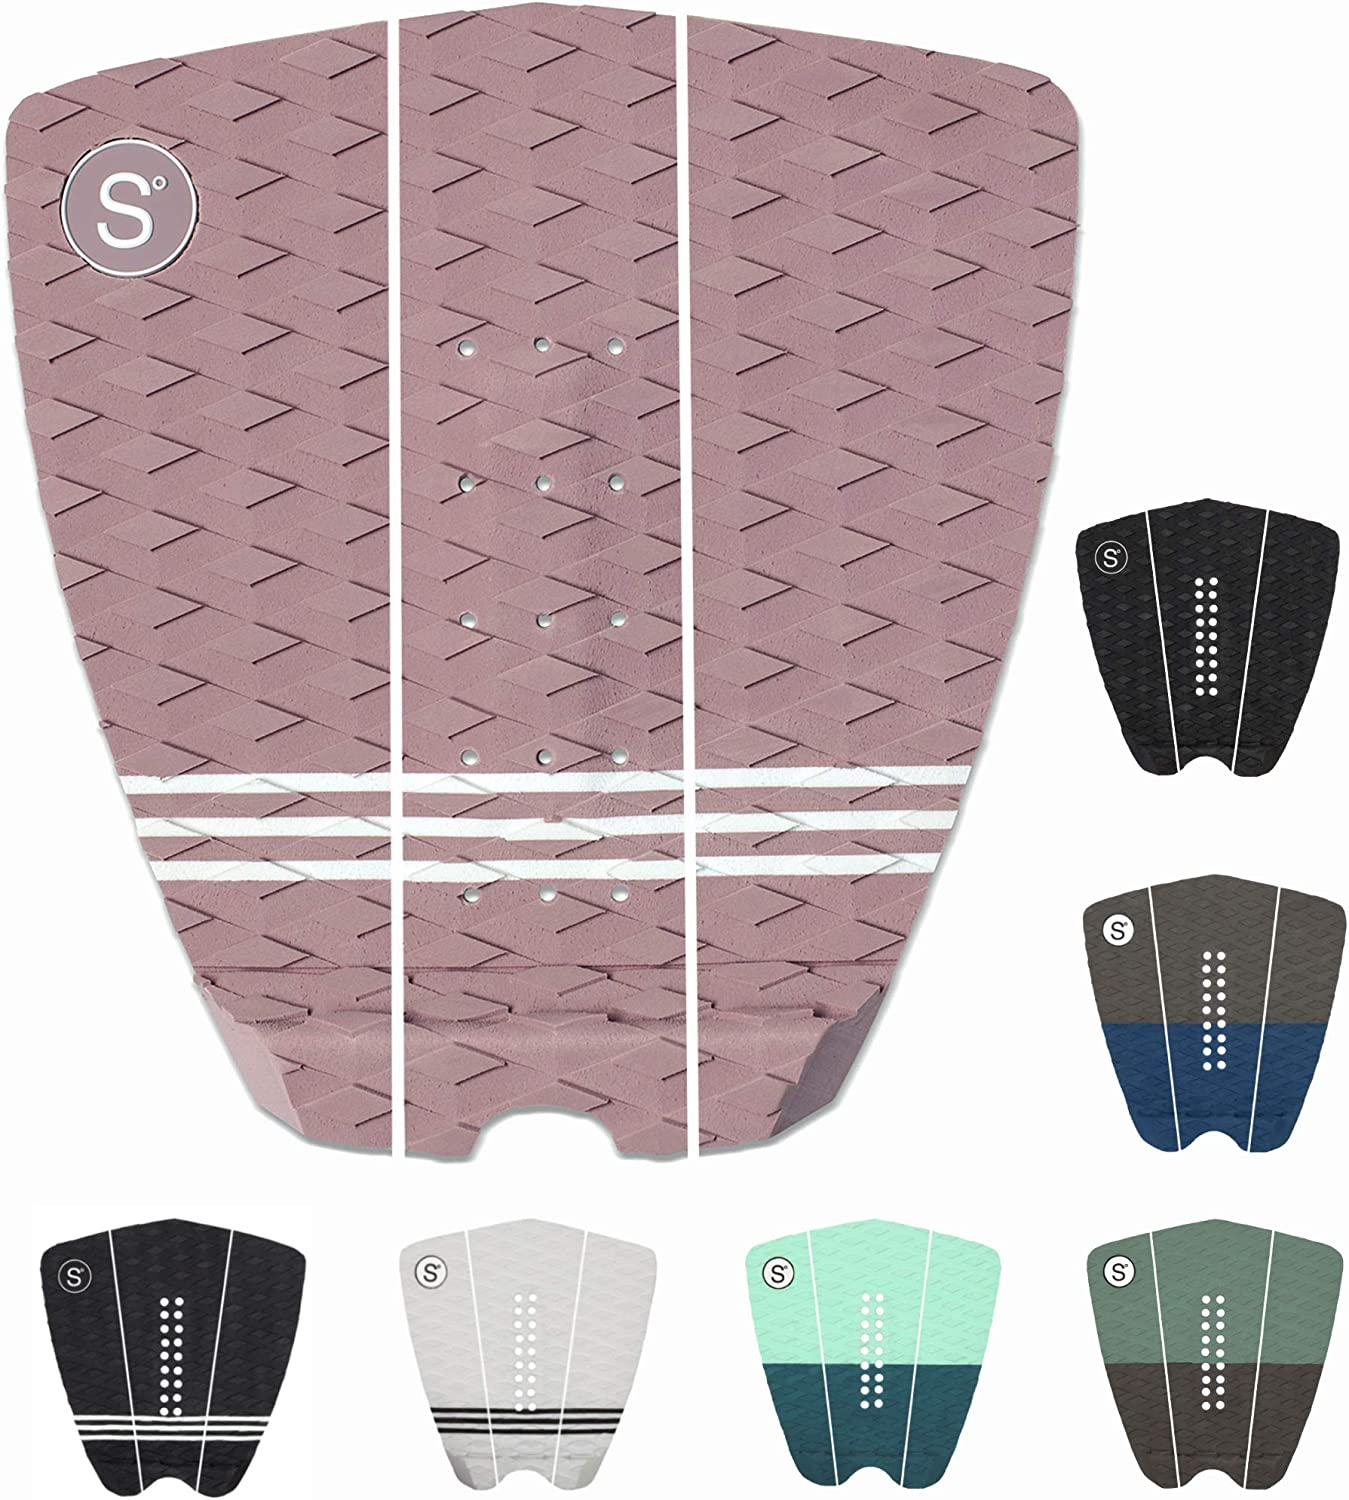 3Pcs Pro Traction Surfboard Surf Board Tail Pad Deck Grip   Surfing Mat